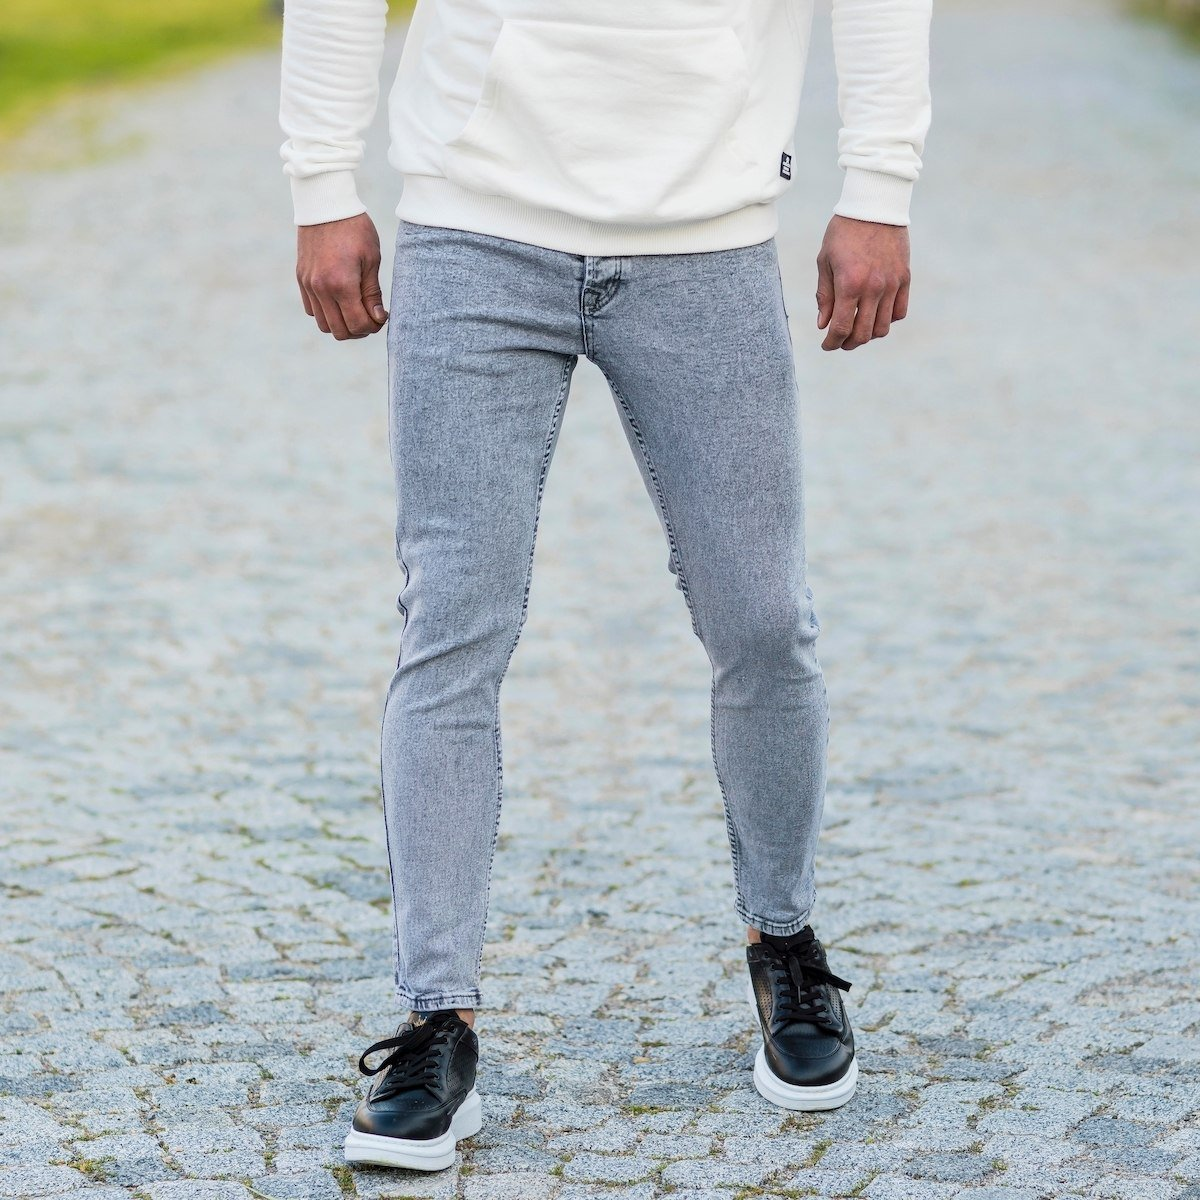 Men's Basic Skinny Jeans In Washed Gray